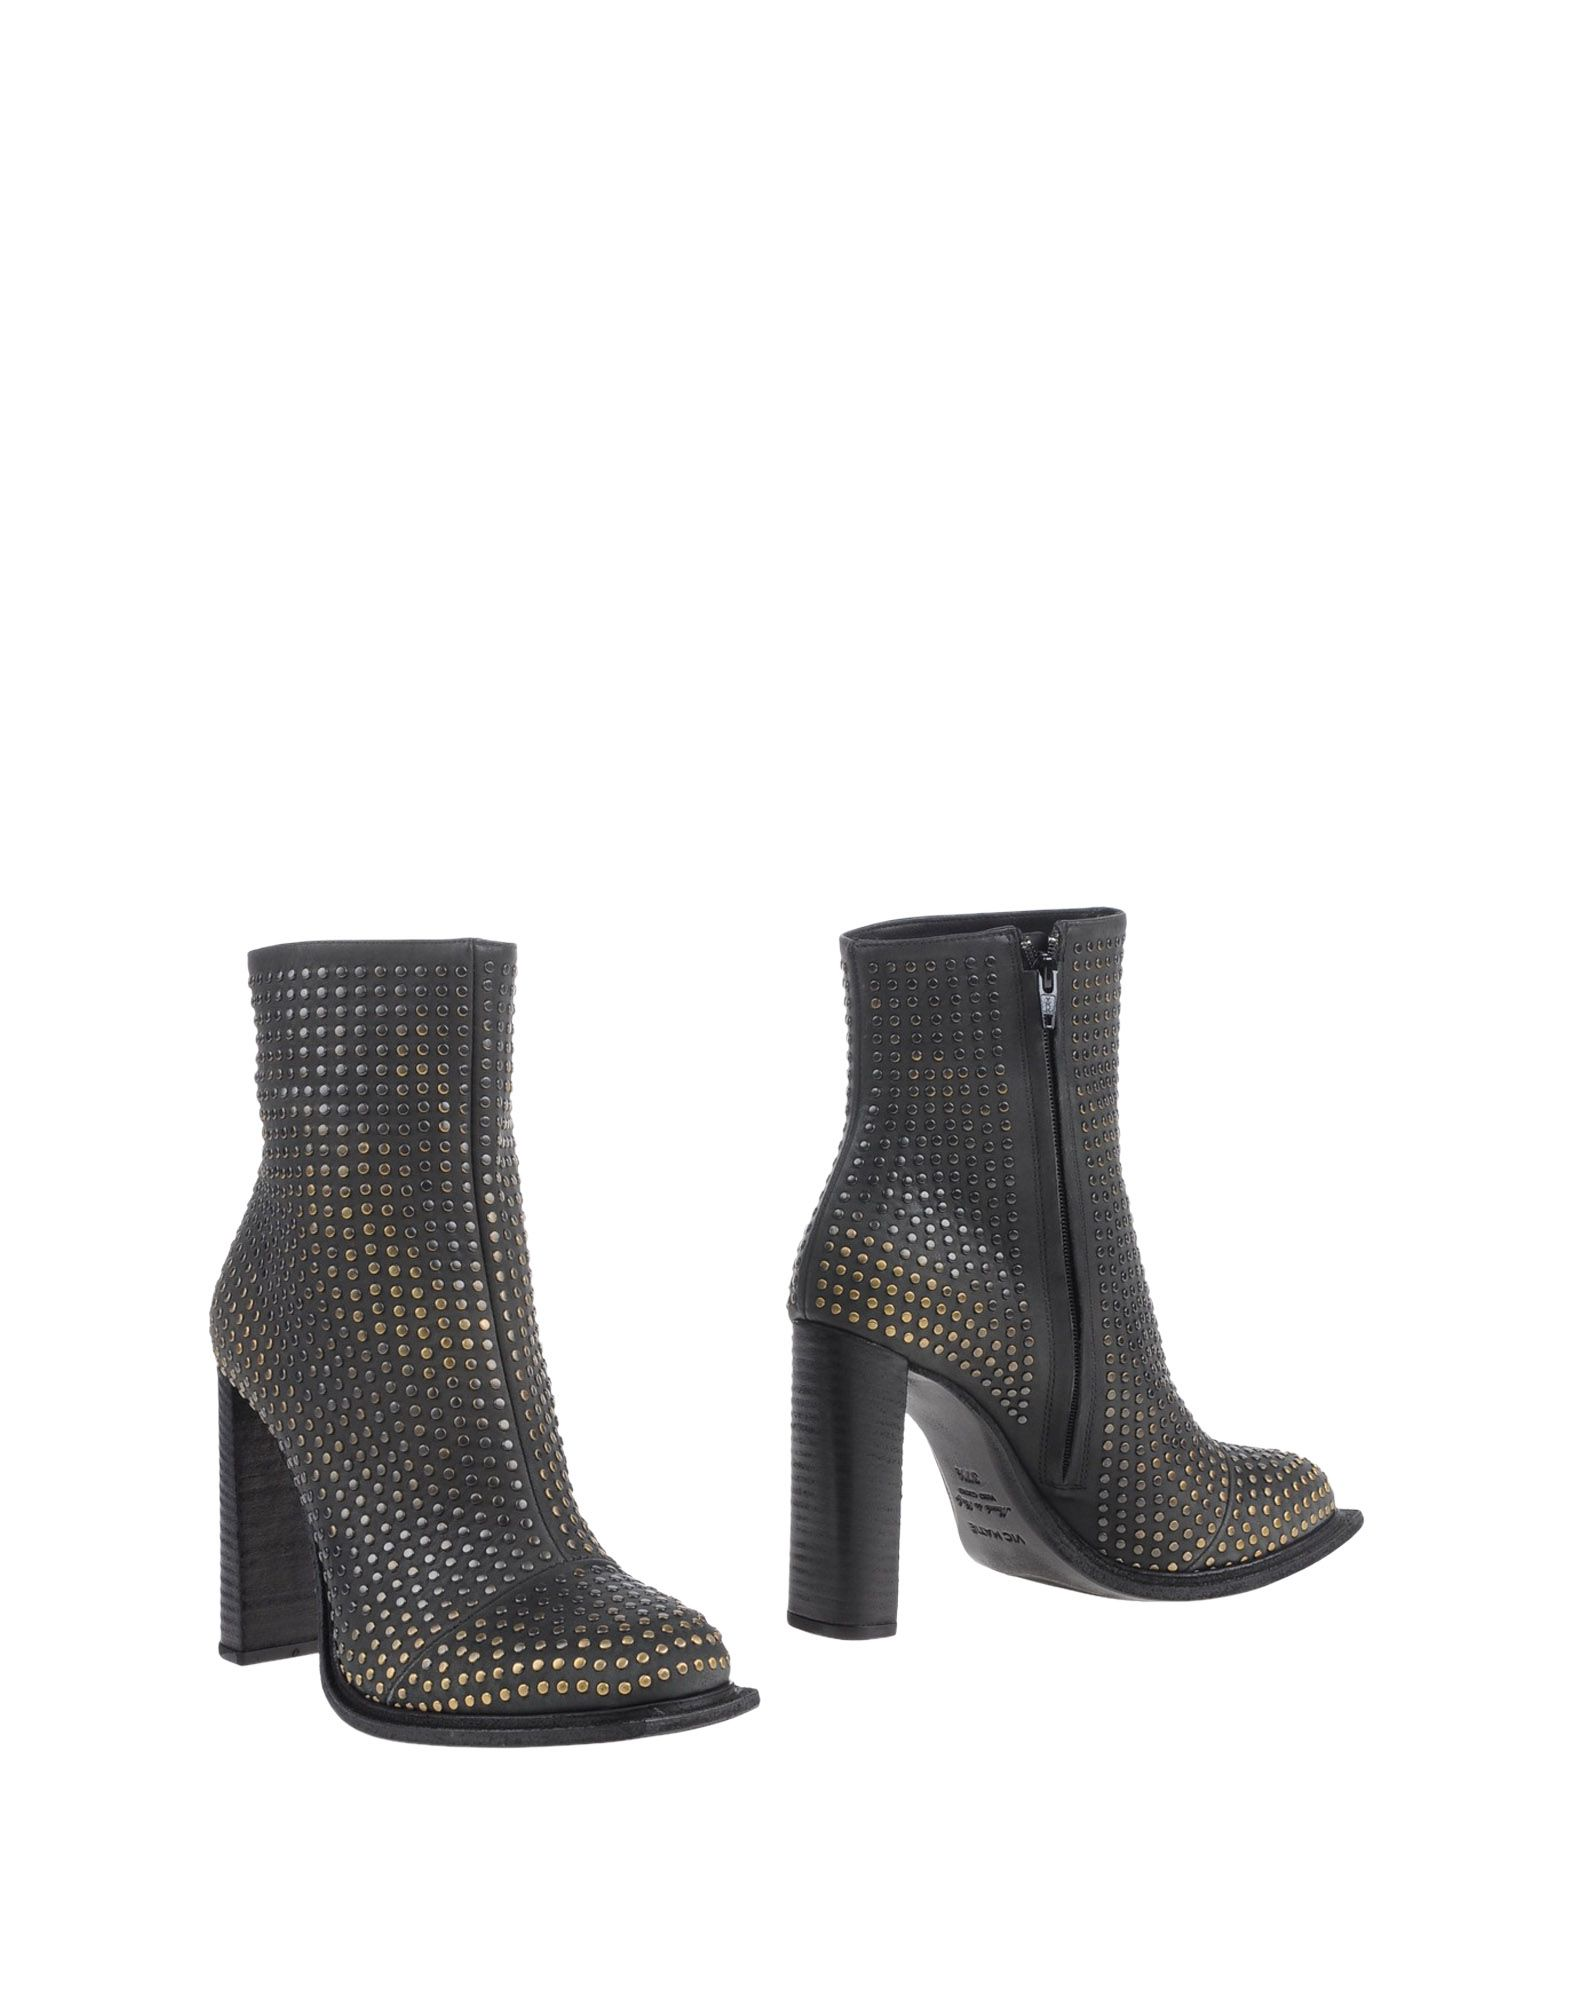 Vic Matiē Ankle Boot - Women Vic Matiē Ankle Boots - online on  Canada - Boots 11015825MX 680653